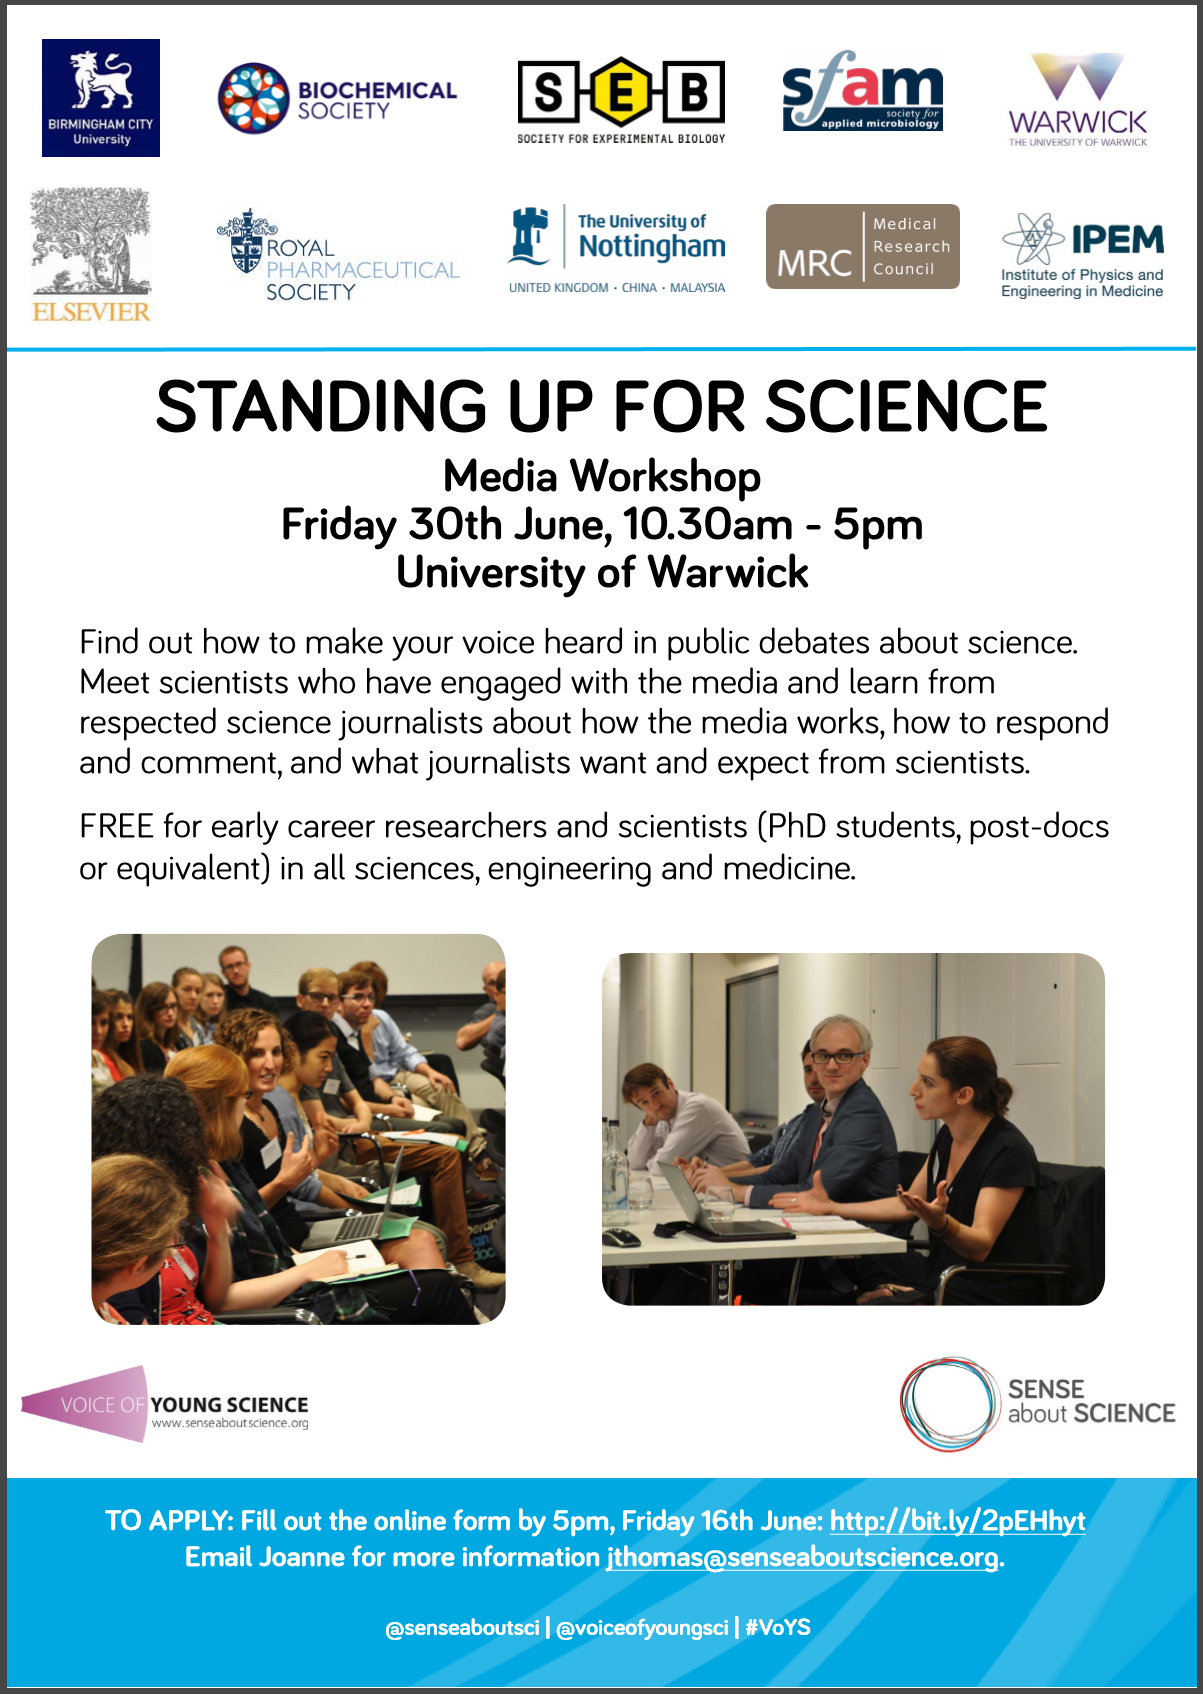 Standing up for Science workshop at University of Warwick, 30th June